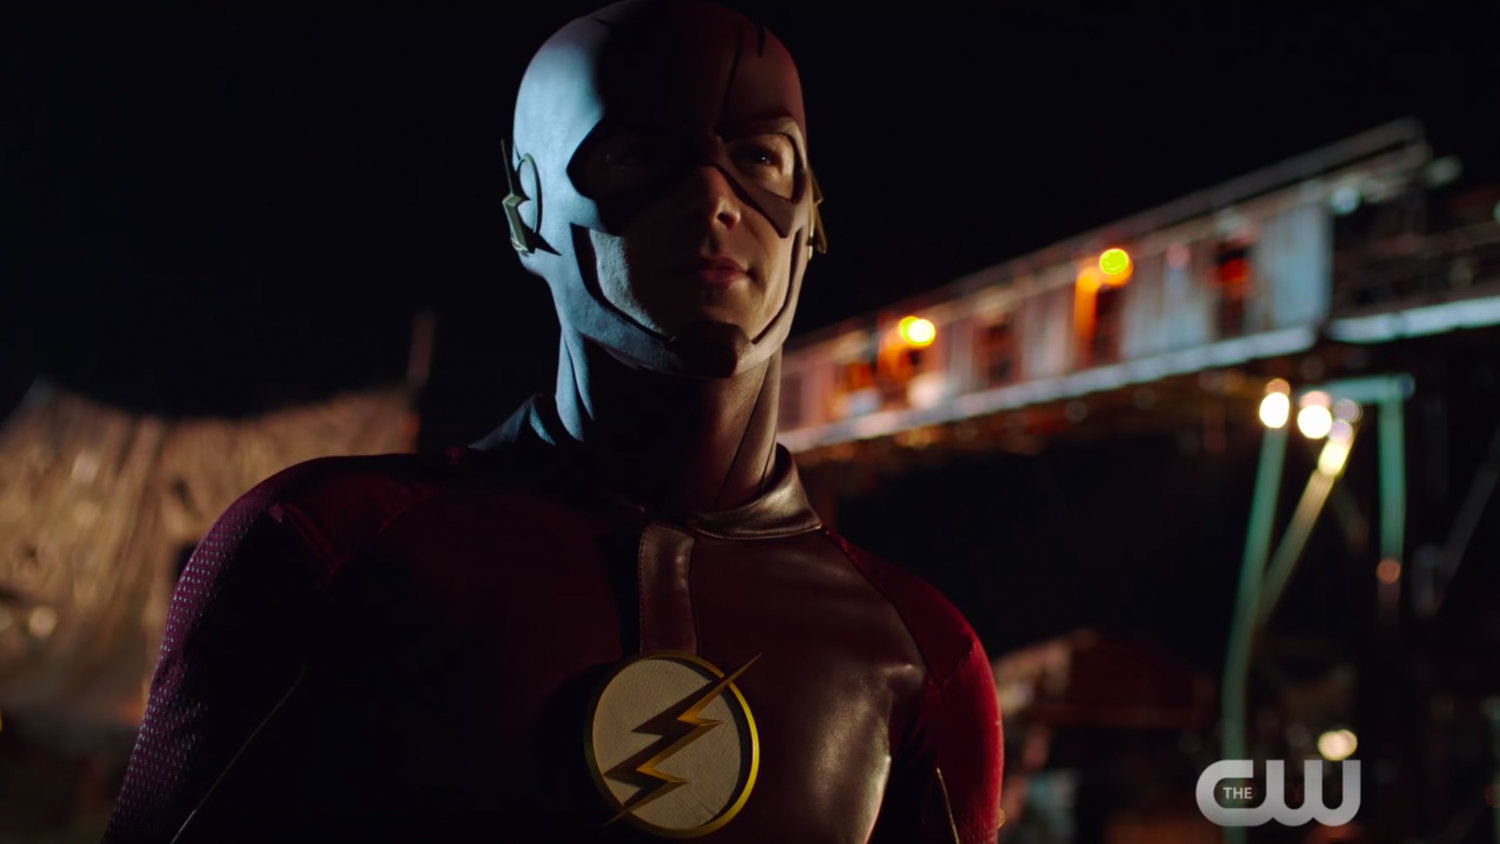 The Flash Gets His Flash Ring in Trailer For THE FLASH Season 5